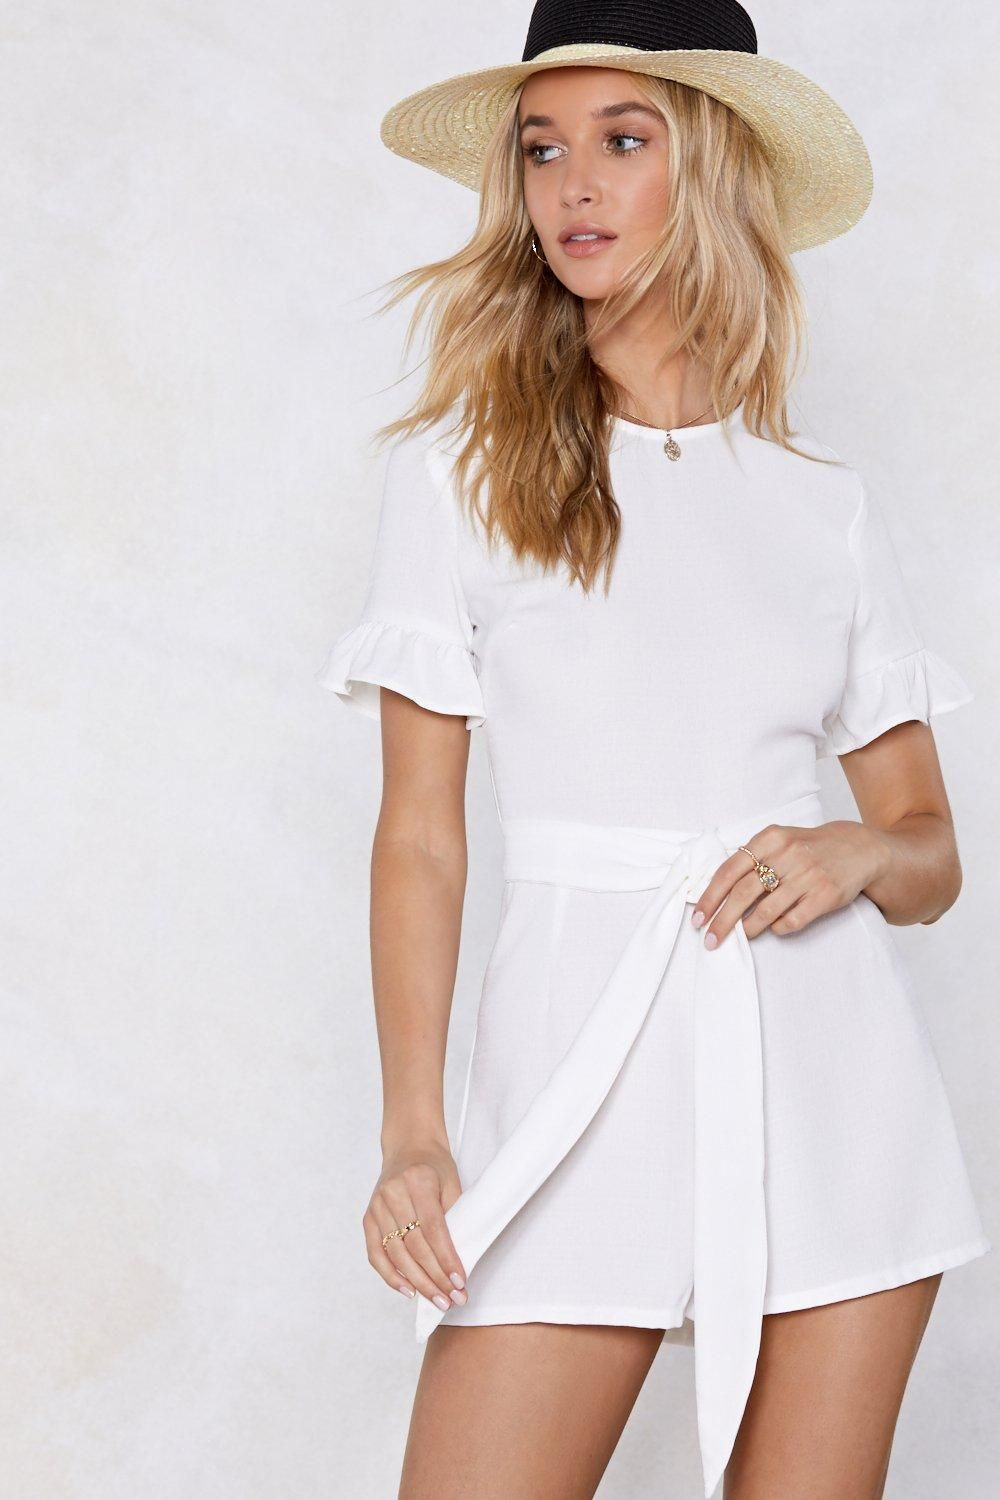 6480bb040eef Nasty gal white jumpsuit with fedora perfect for hot summer days ...